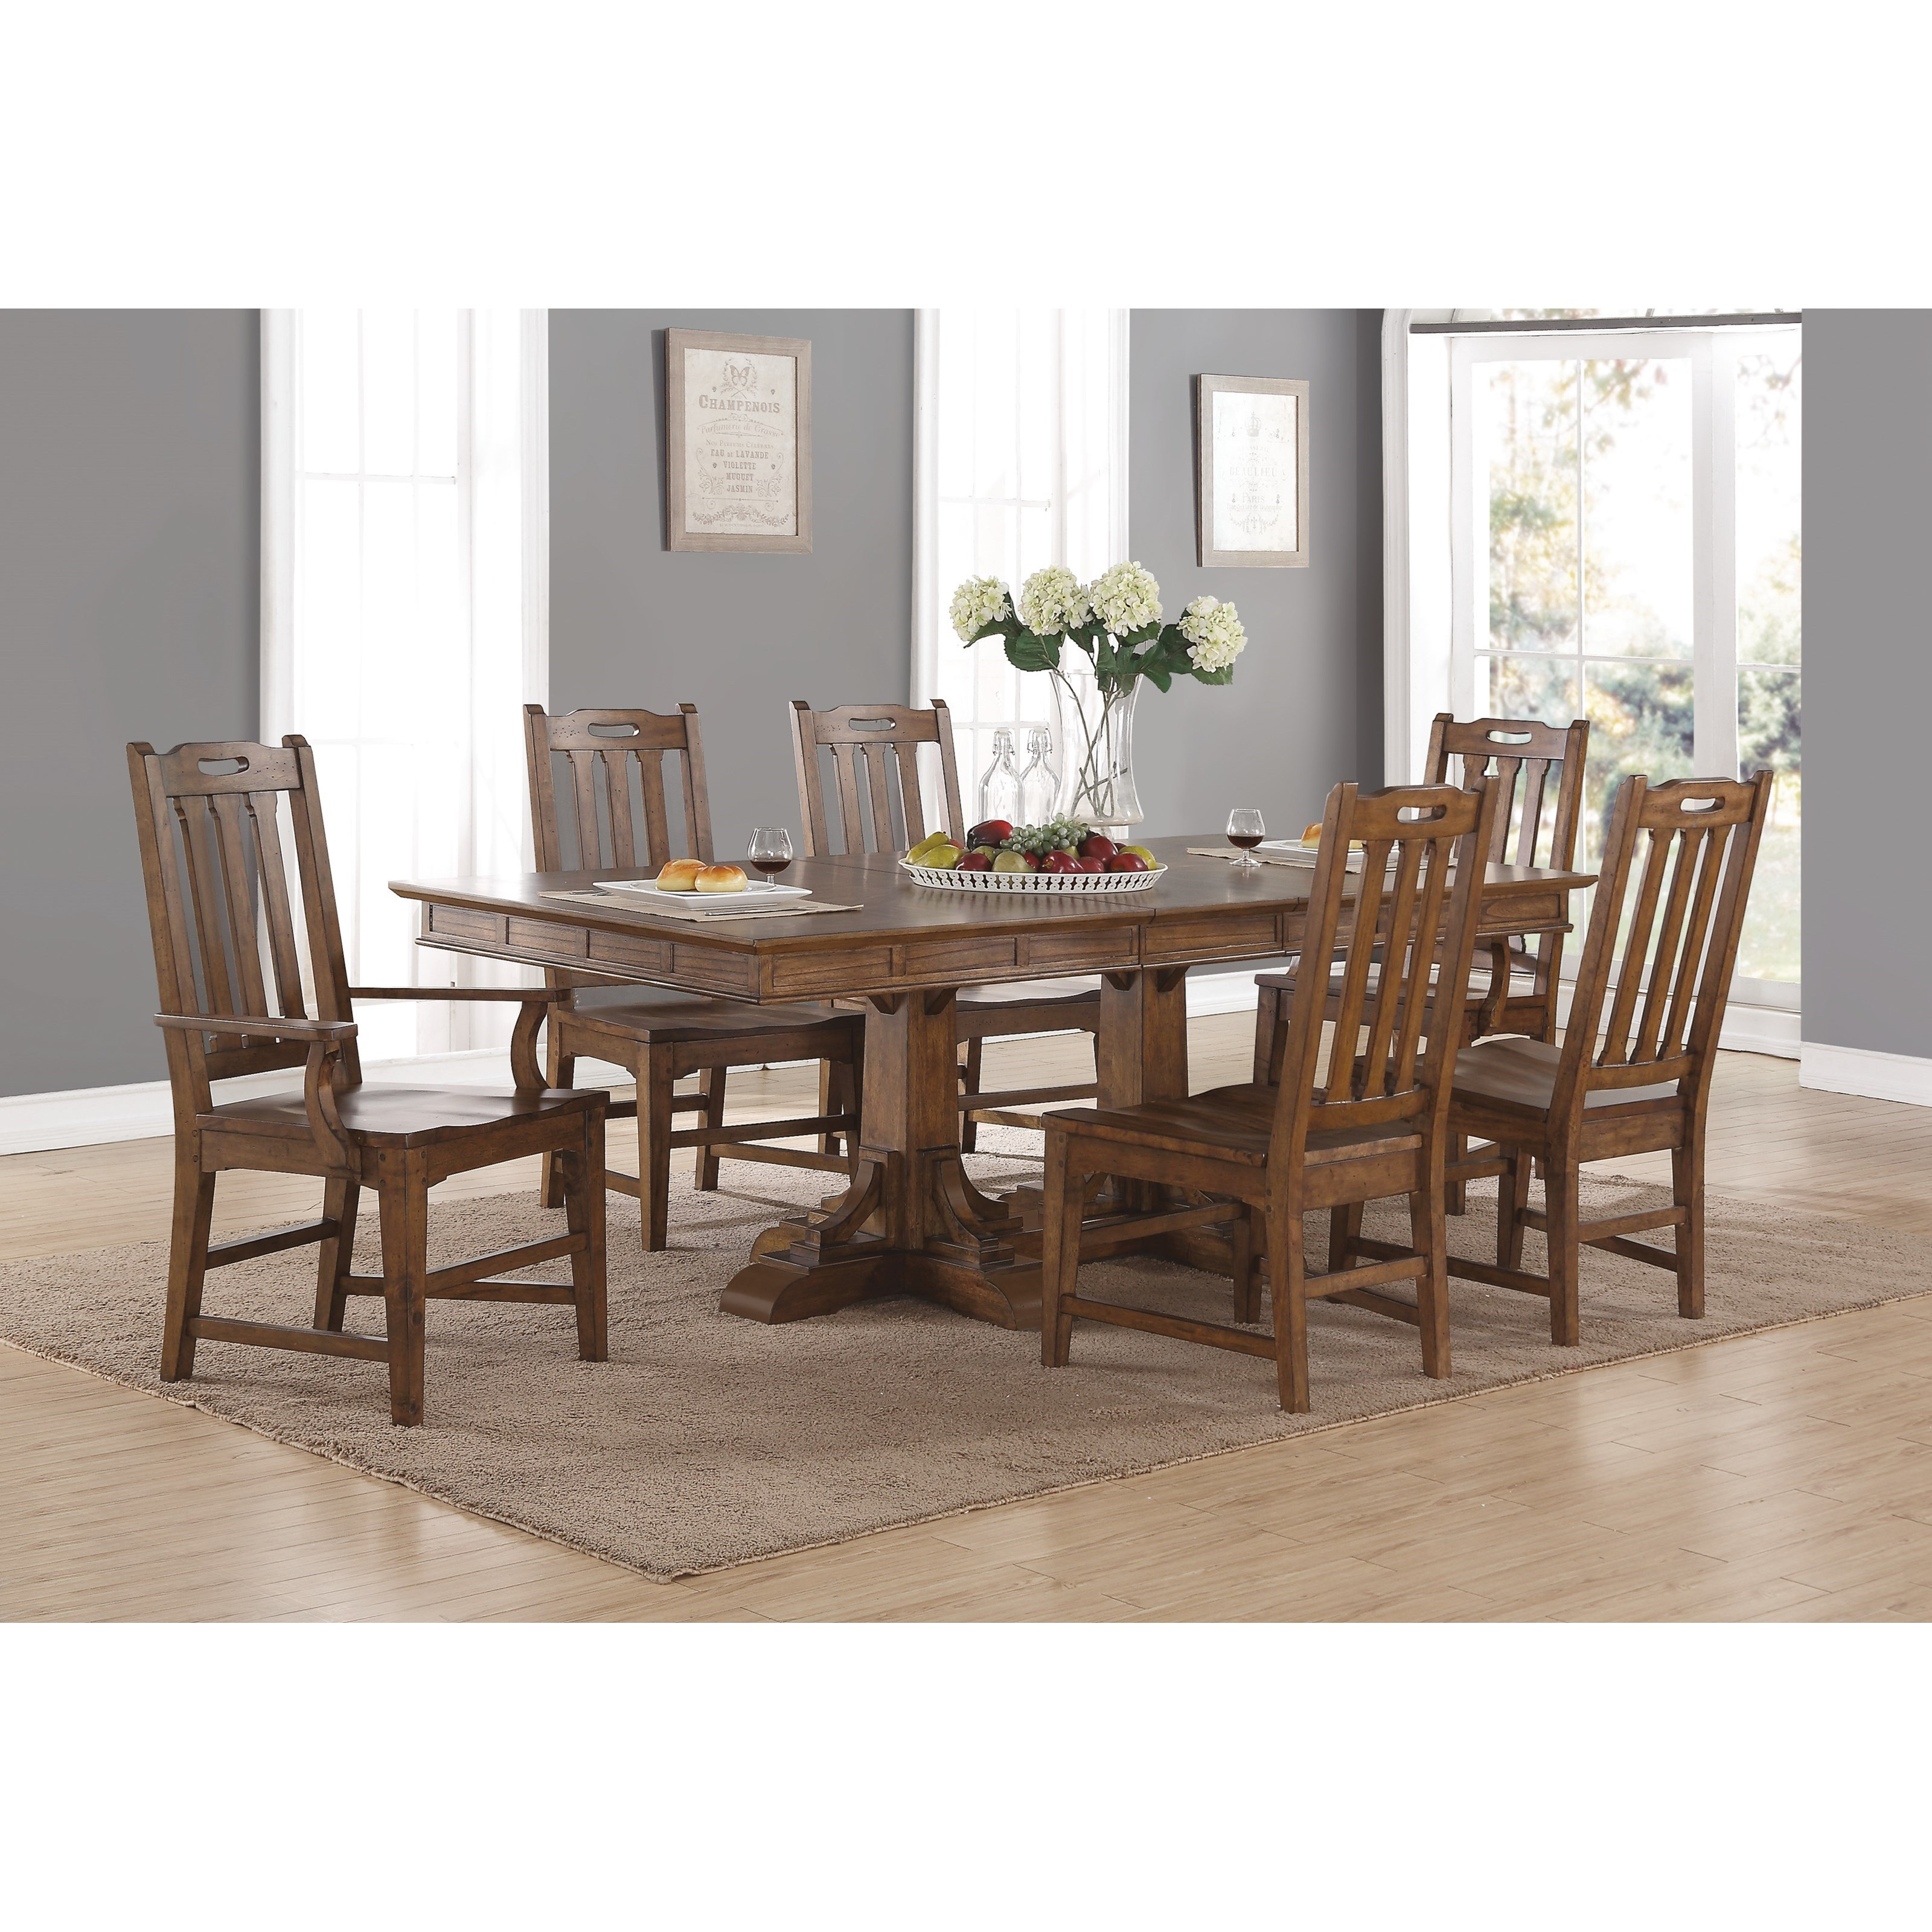 Formal Dining Table: Flexsteel Wynwood Collection Sonora Mission Formal Dining